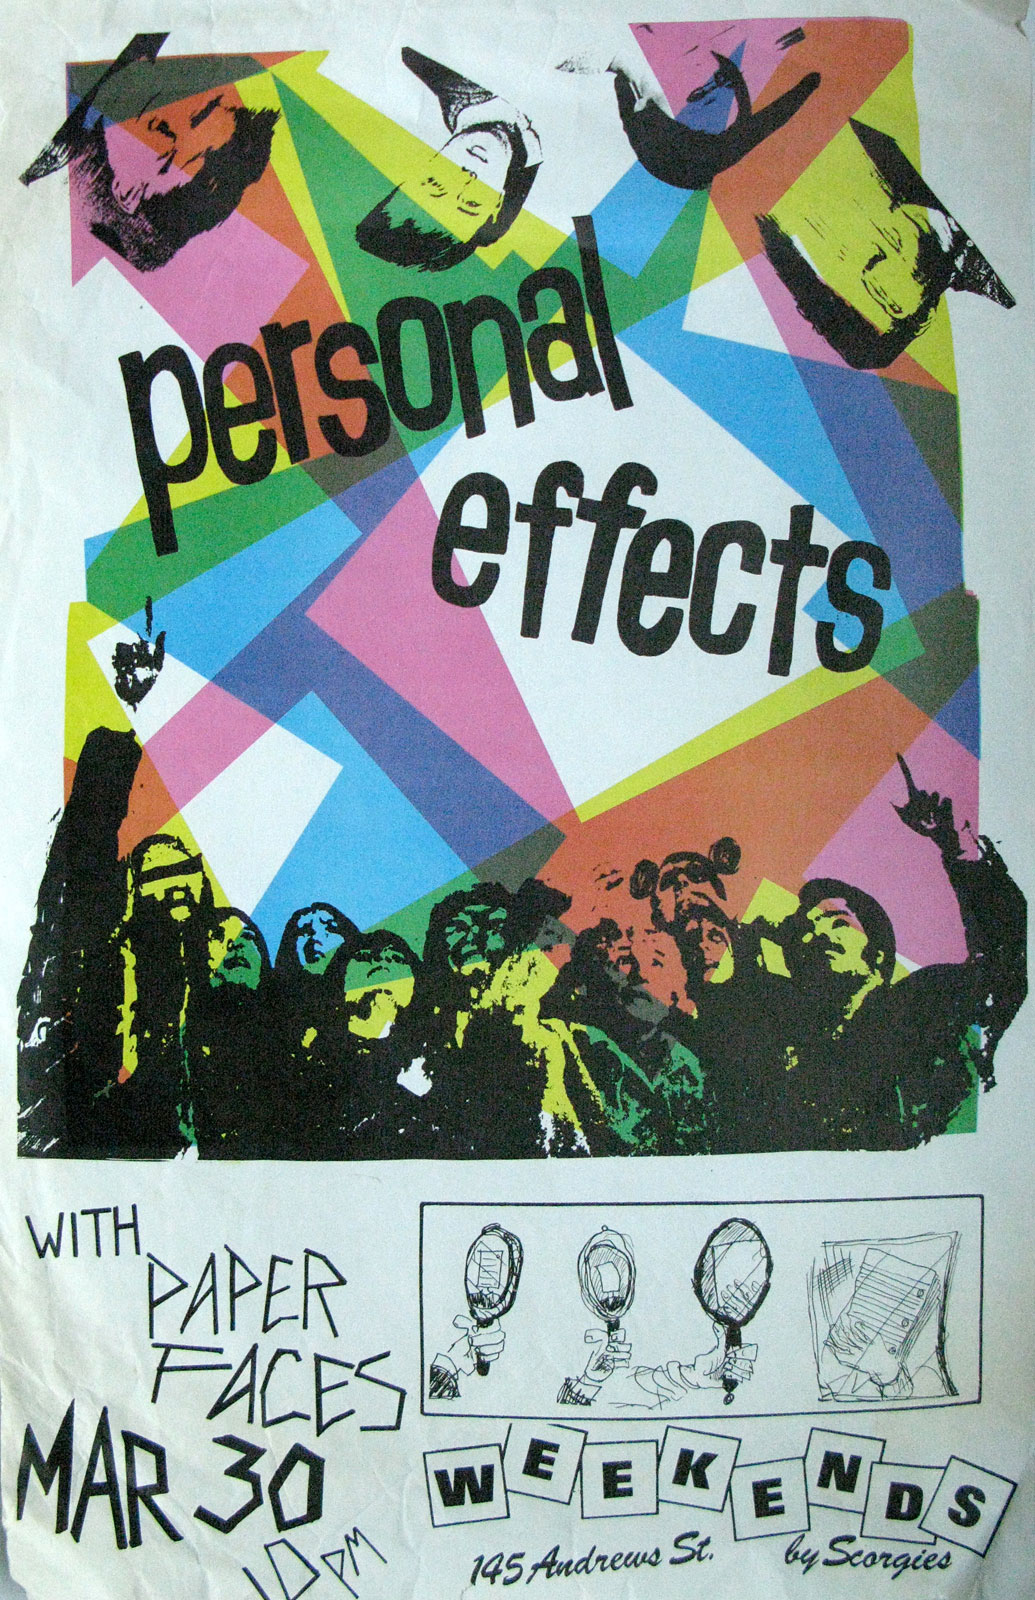 Poster for Personal Effects with Paper Faces at Scorgie's in Rochester, New York on 03.30.1984. Chris Schepp designed this poster and printed it at Midtown Printing.